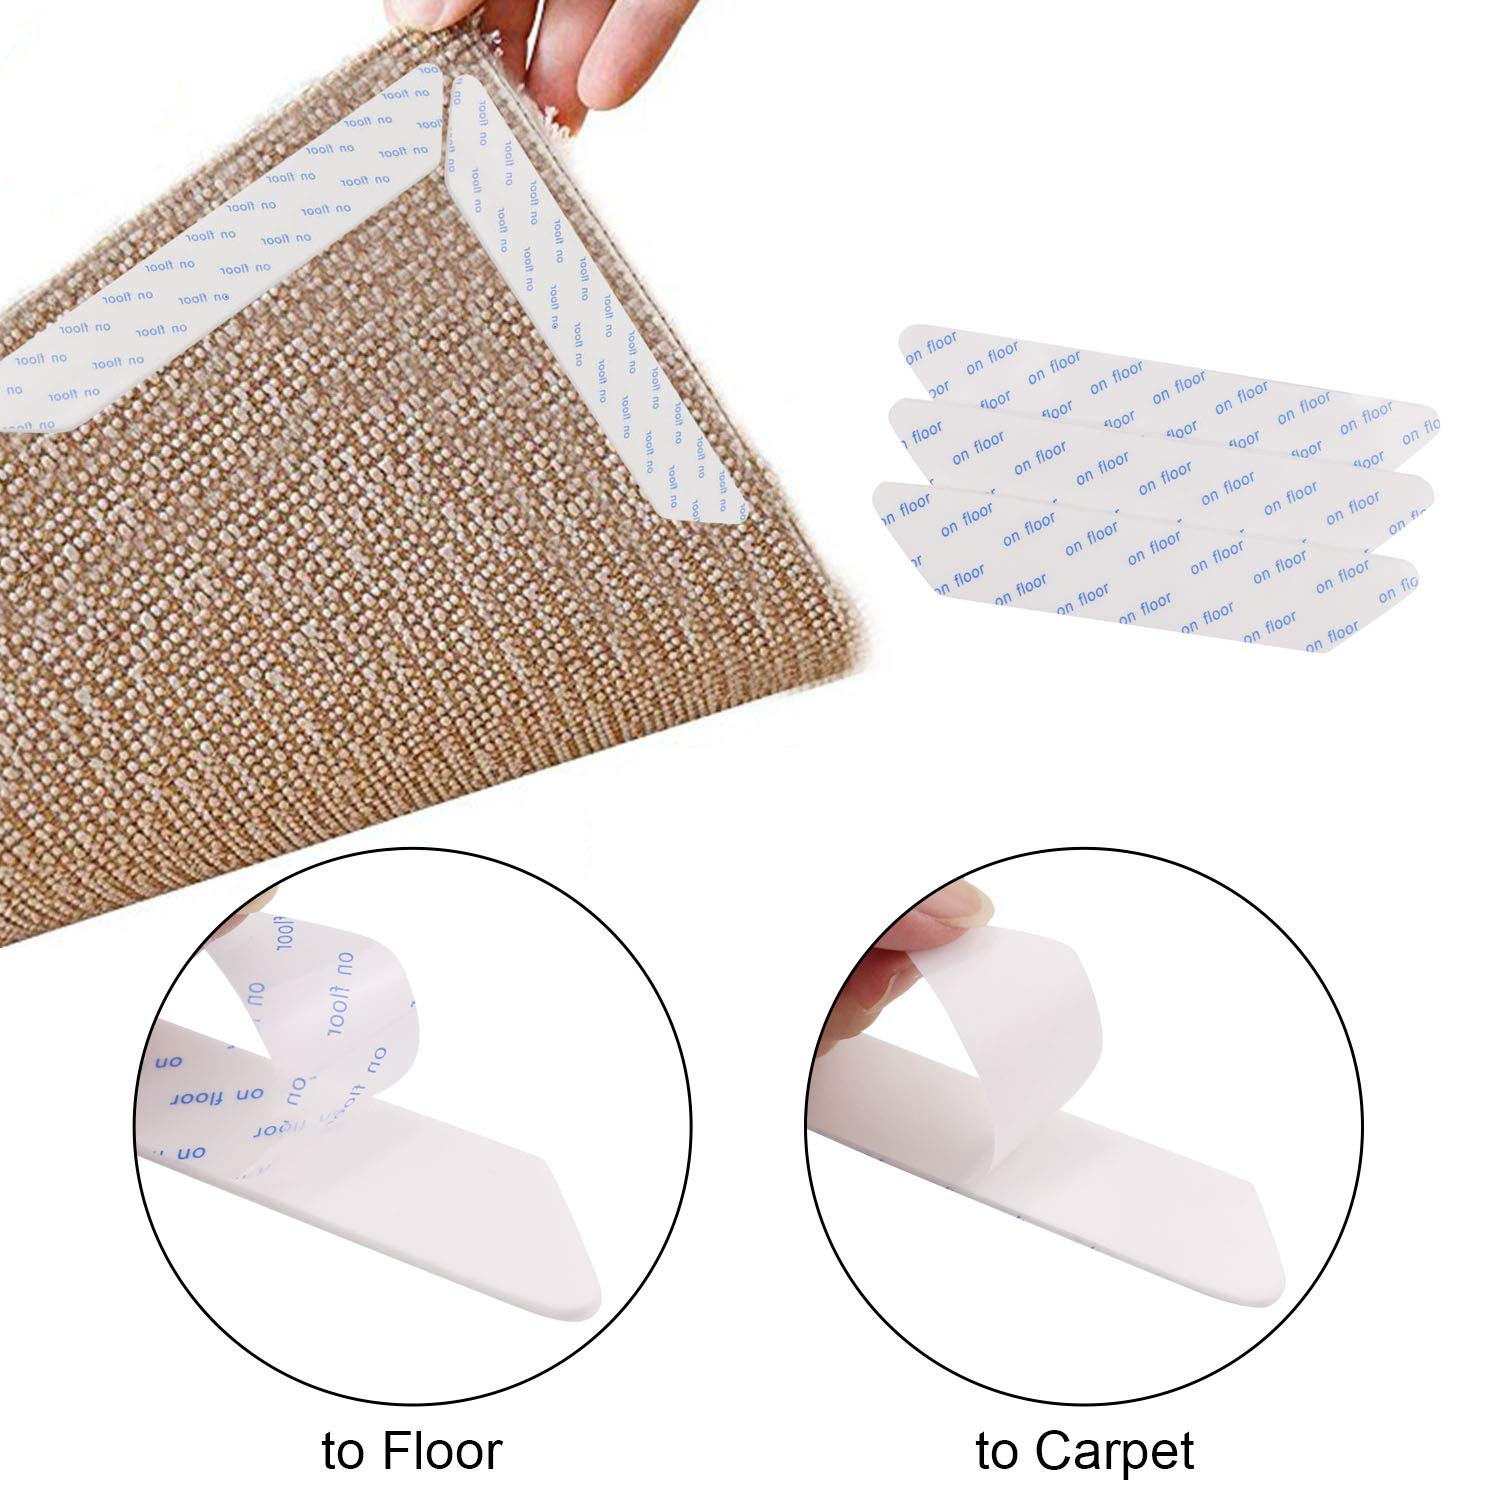 ACMEDE Rug Gripper Non Slip Anti Curling Rug Stoppers Keeps Rug Corner Flat Carpet Anchors for Indoor Reusable Carpet Gripper 8 PCS 7.08 x 1.18 x 0.07 inch